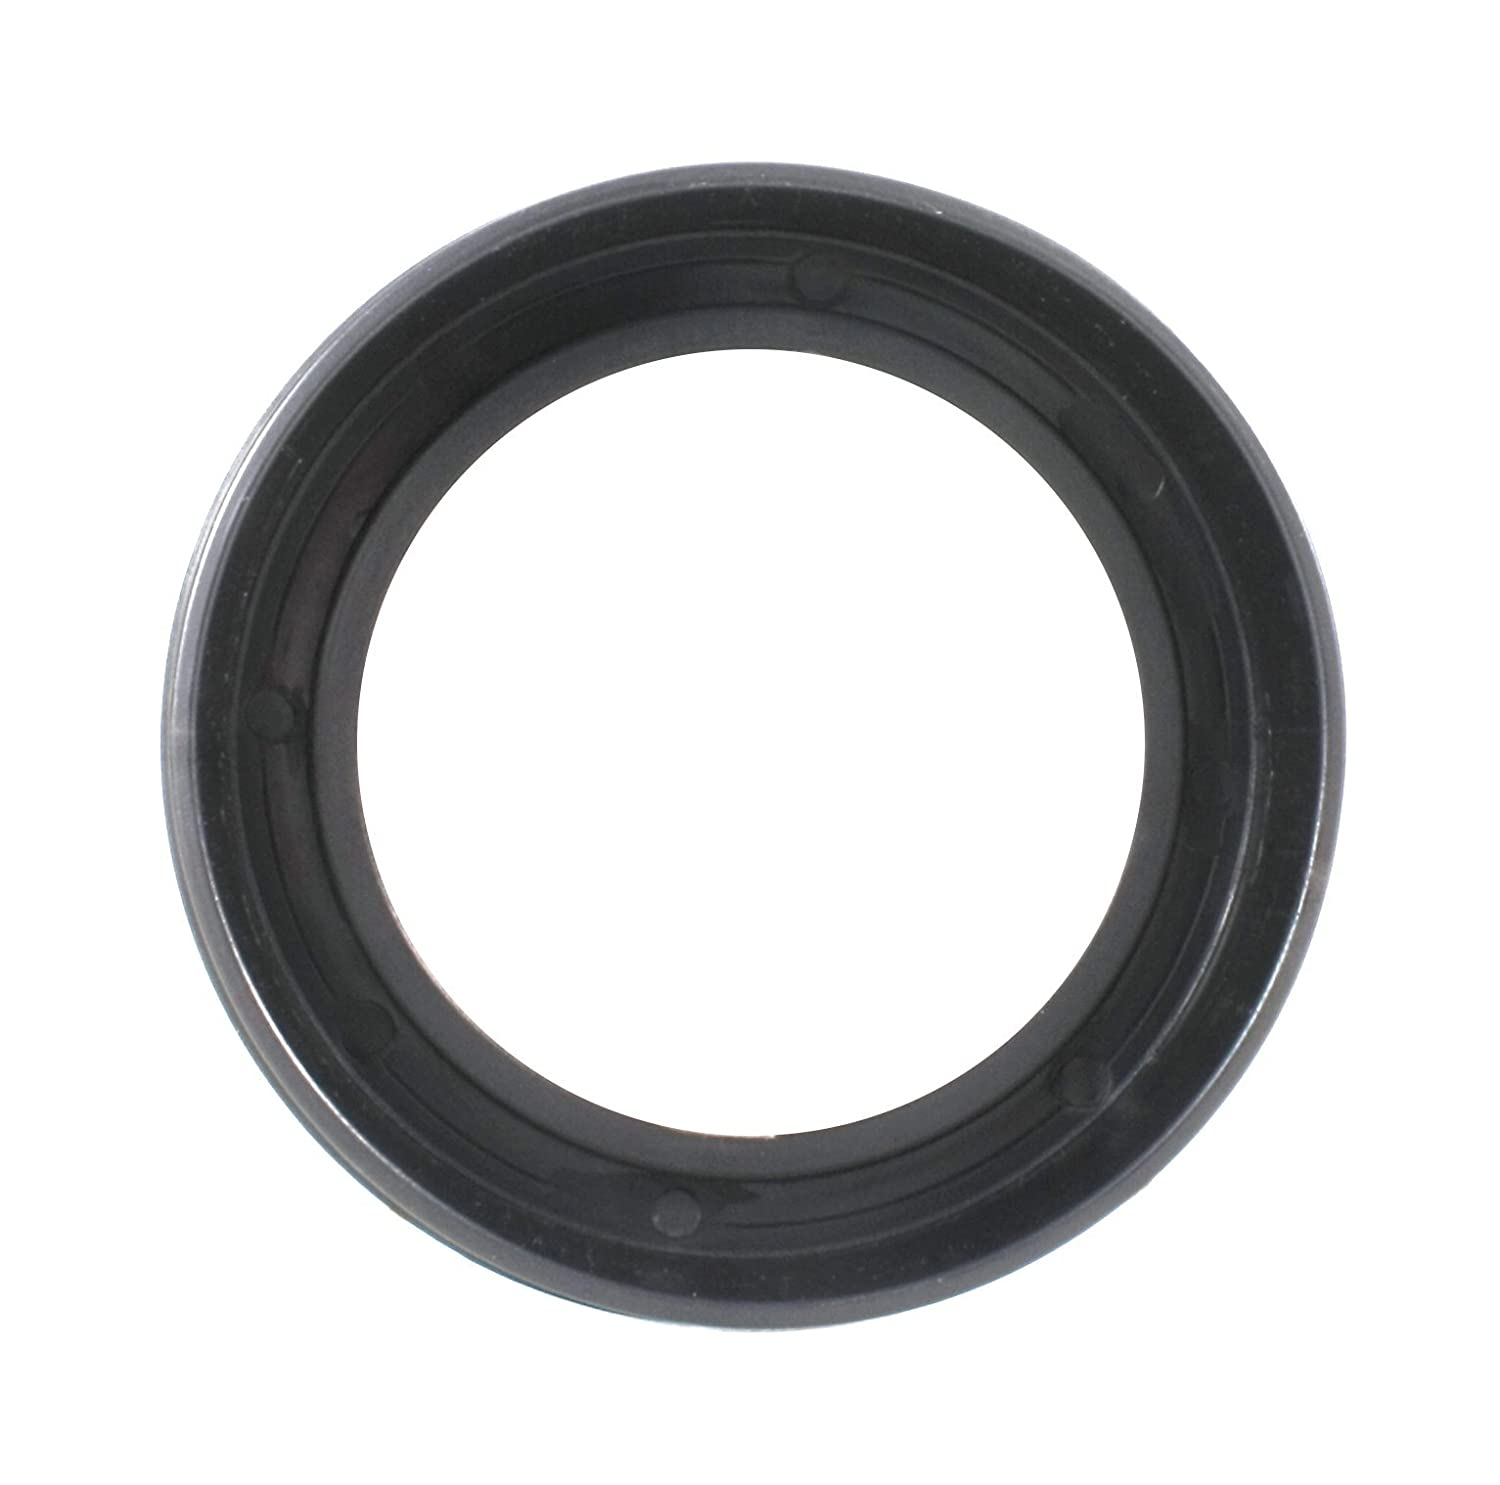 Four-Way Connector for Black Plastic Drain UA-100 Series